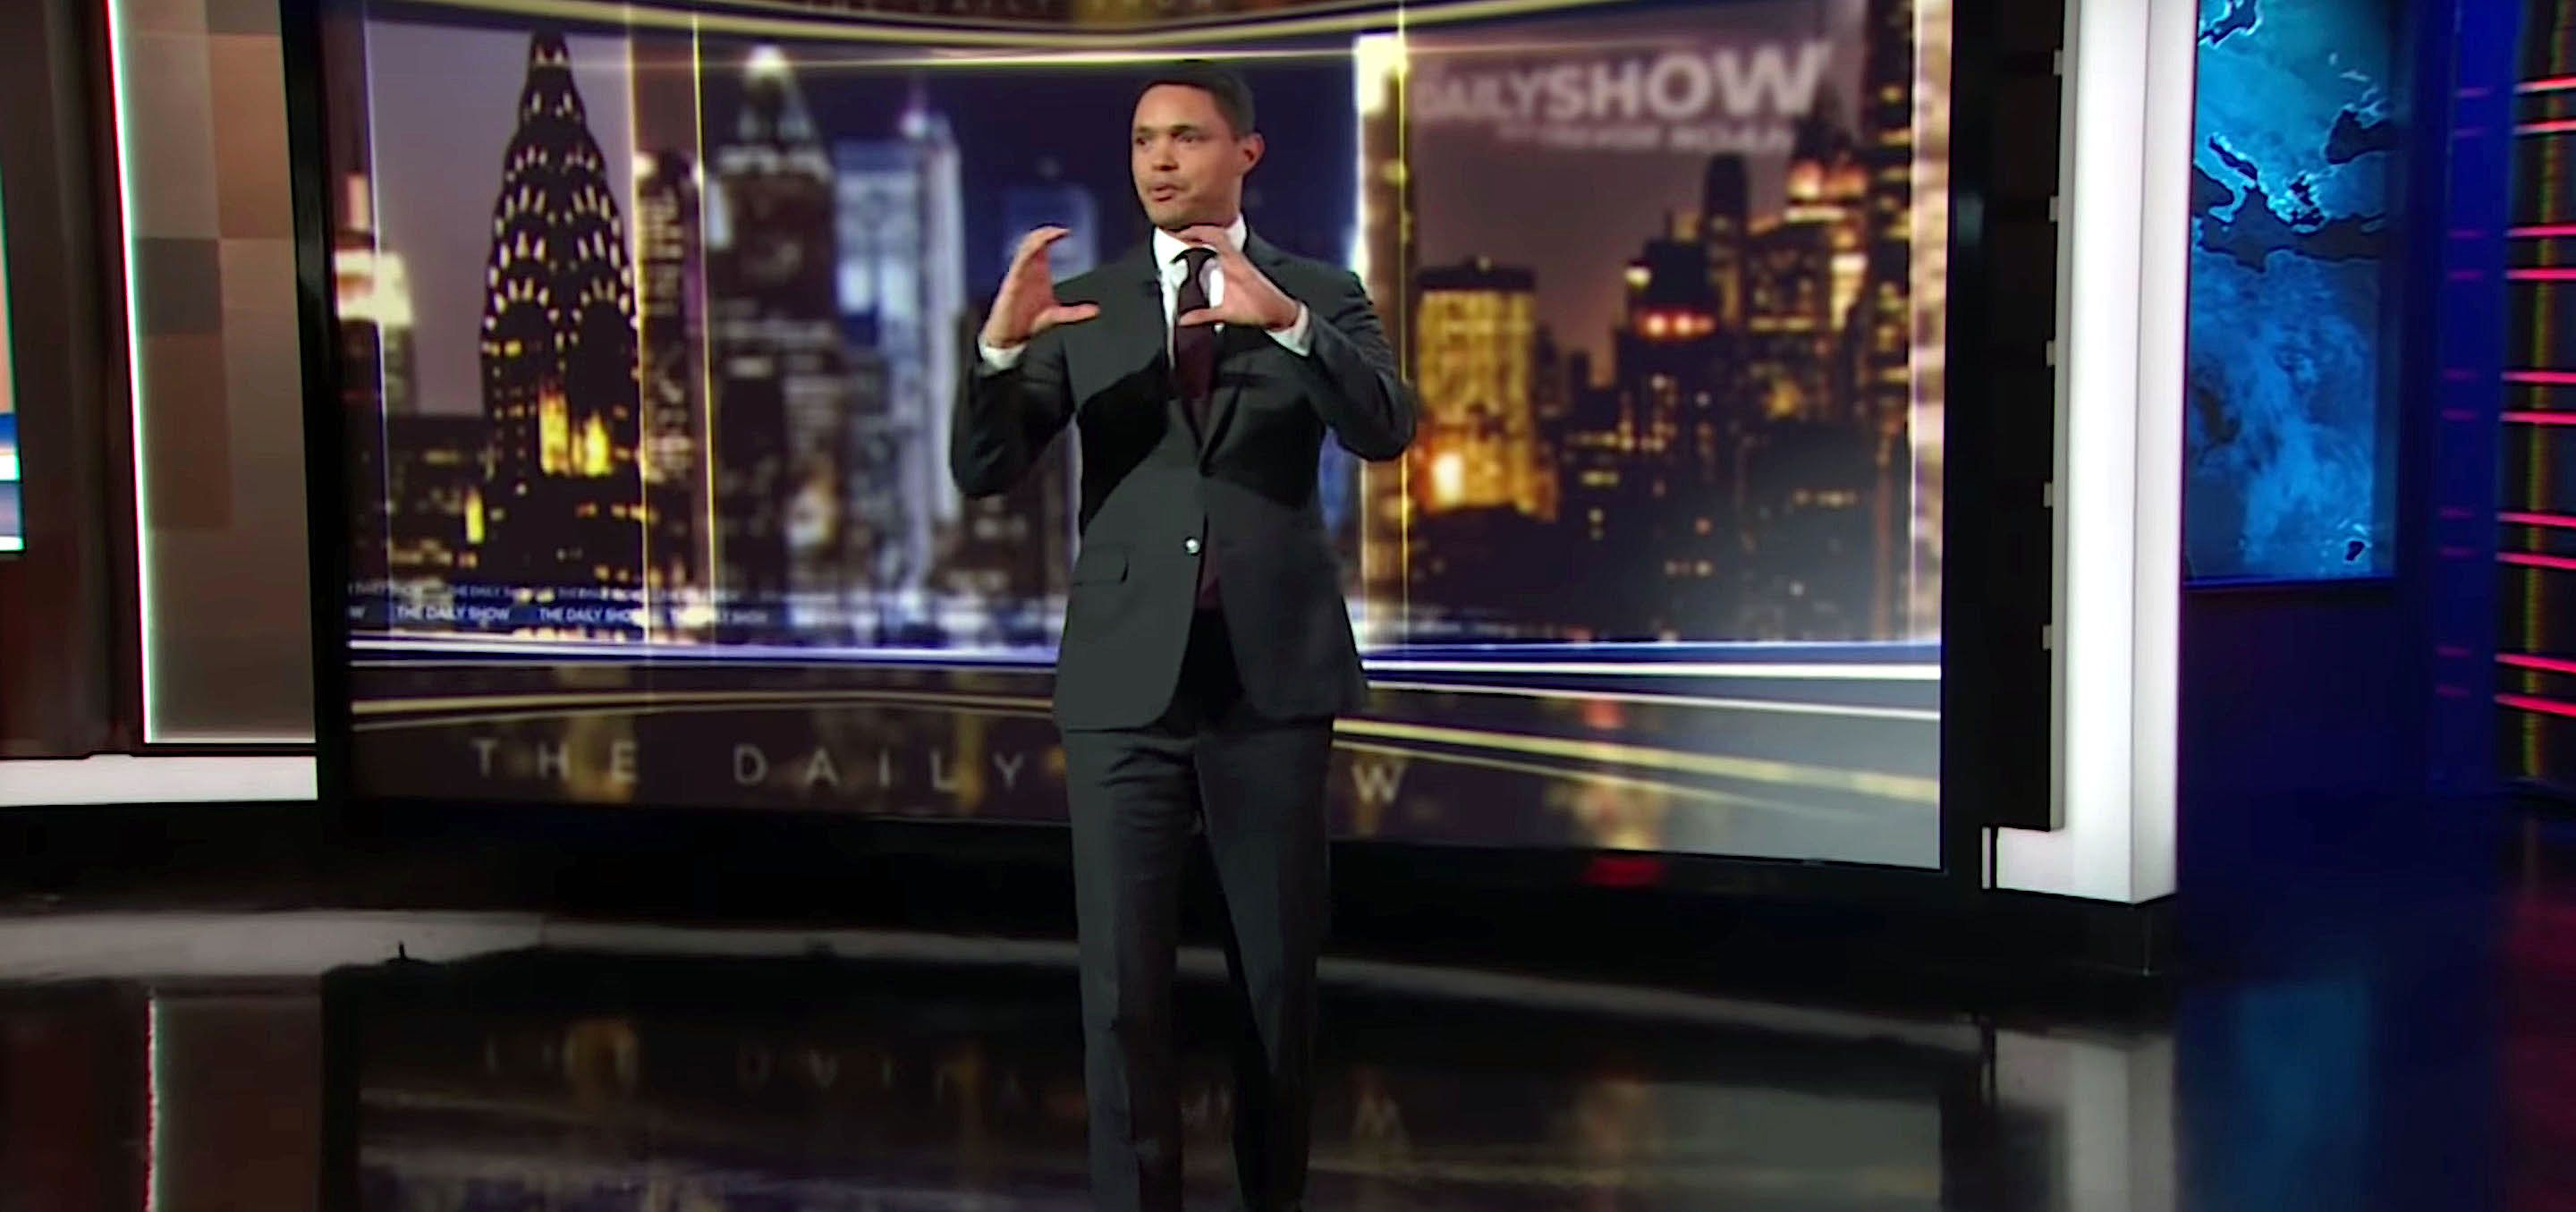 Trevor Noah of The Daily Show tells his studio audience about his favorite toy as a child